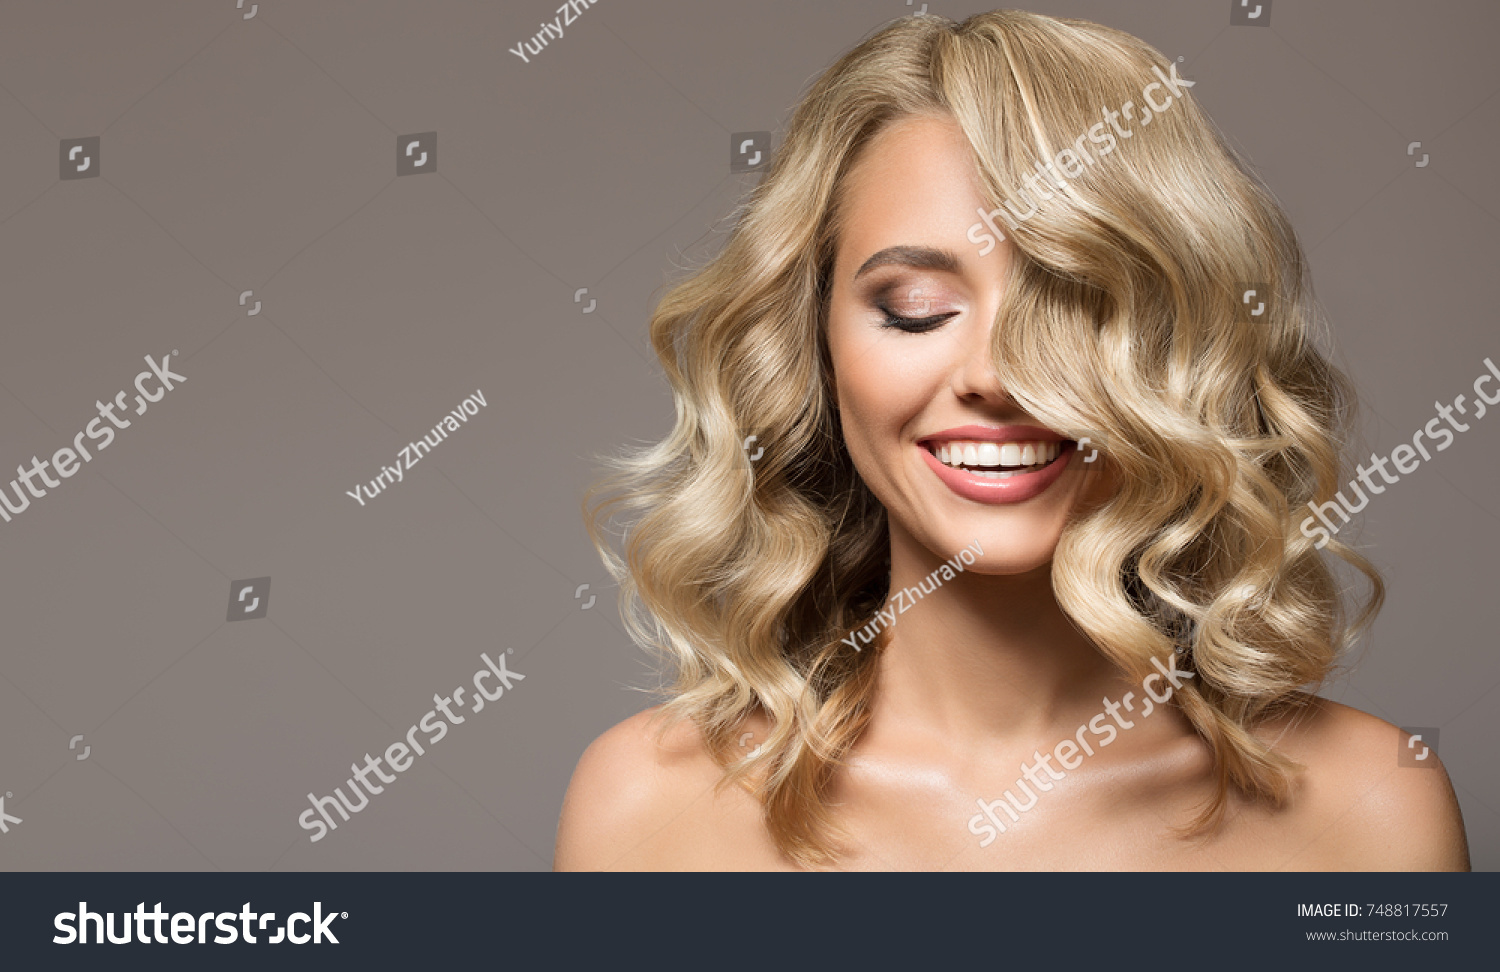 Blonde woman with curly beautiful hair smiling on gray background.  #748817557